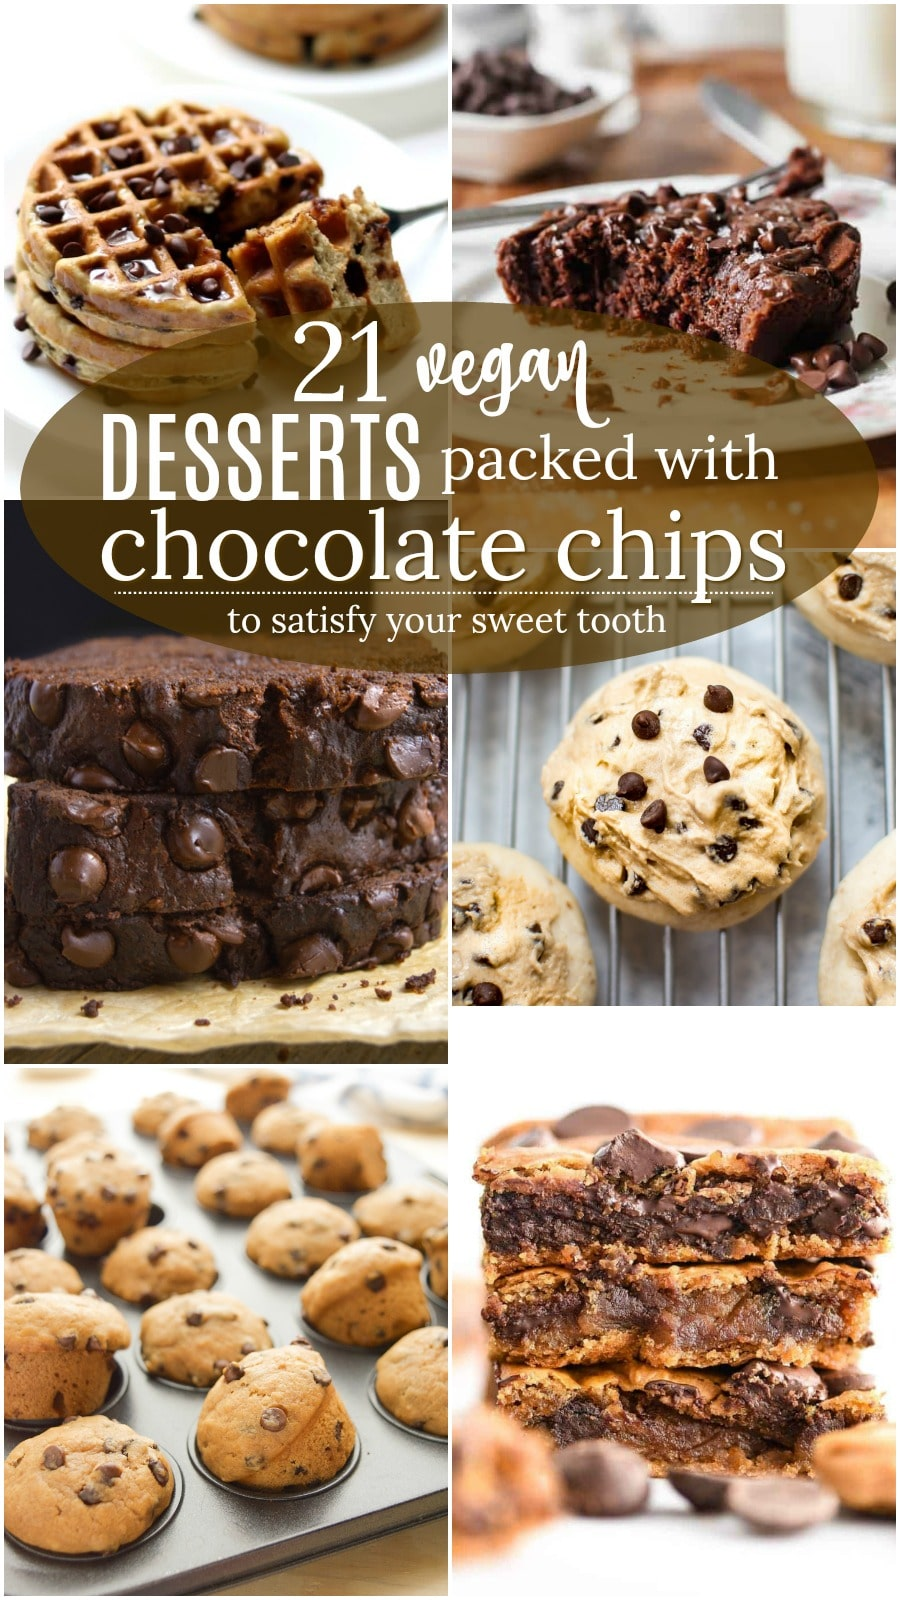 Vegan Chocolate Chip Desserts collage for Pinterest.